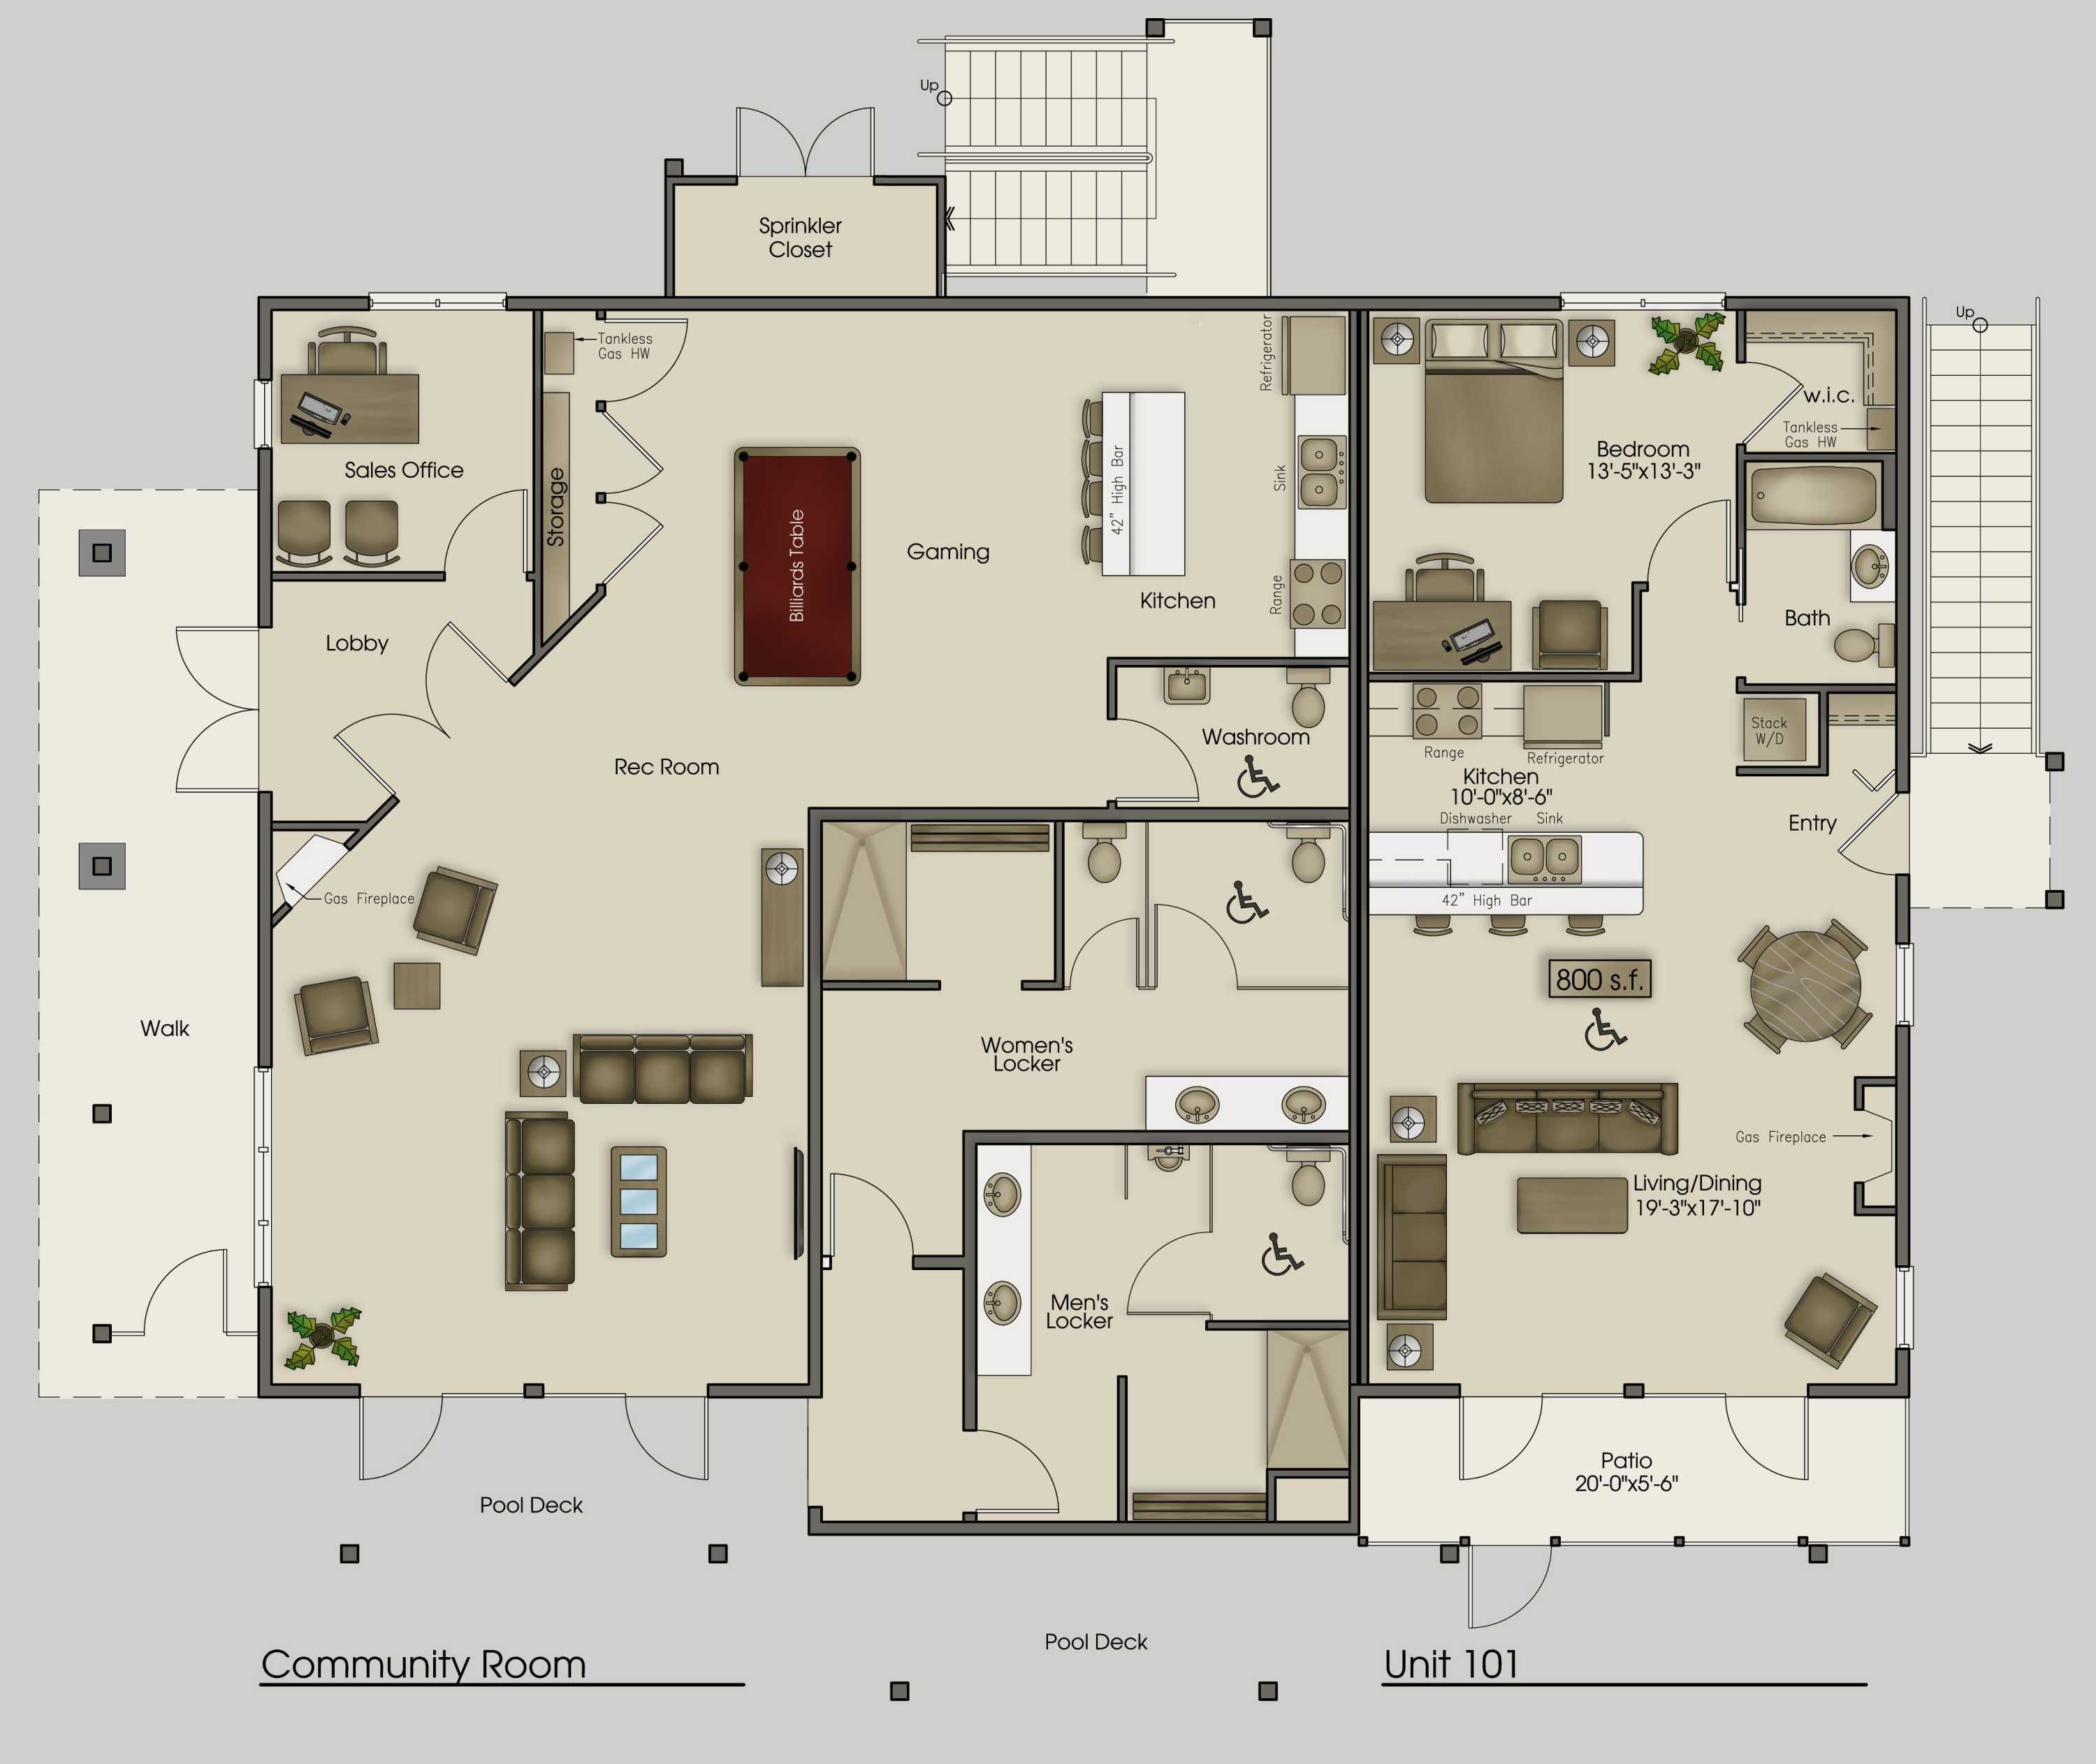 Mega villa plans clubhouse plan pictures apartments sample giesendesign floor plan software Free house layouts floor plans